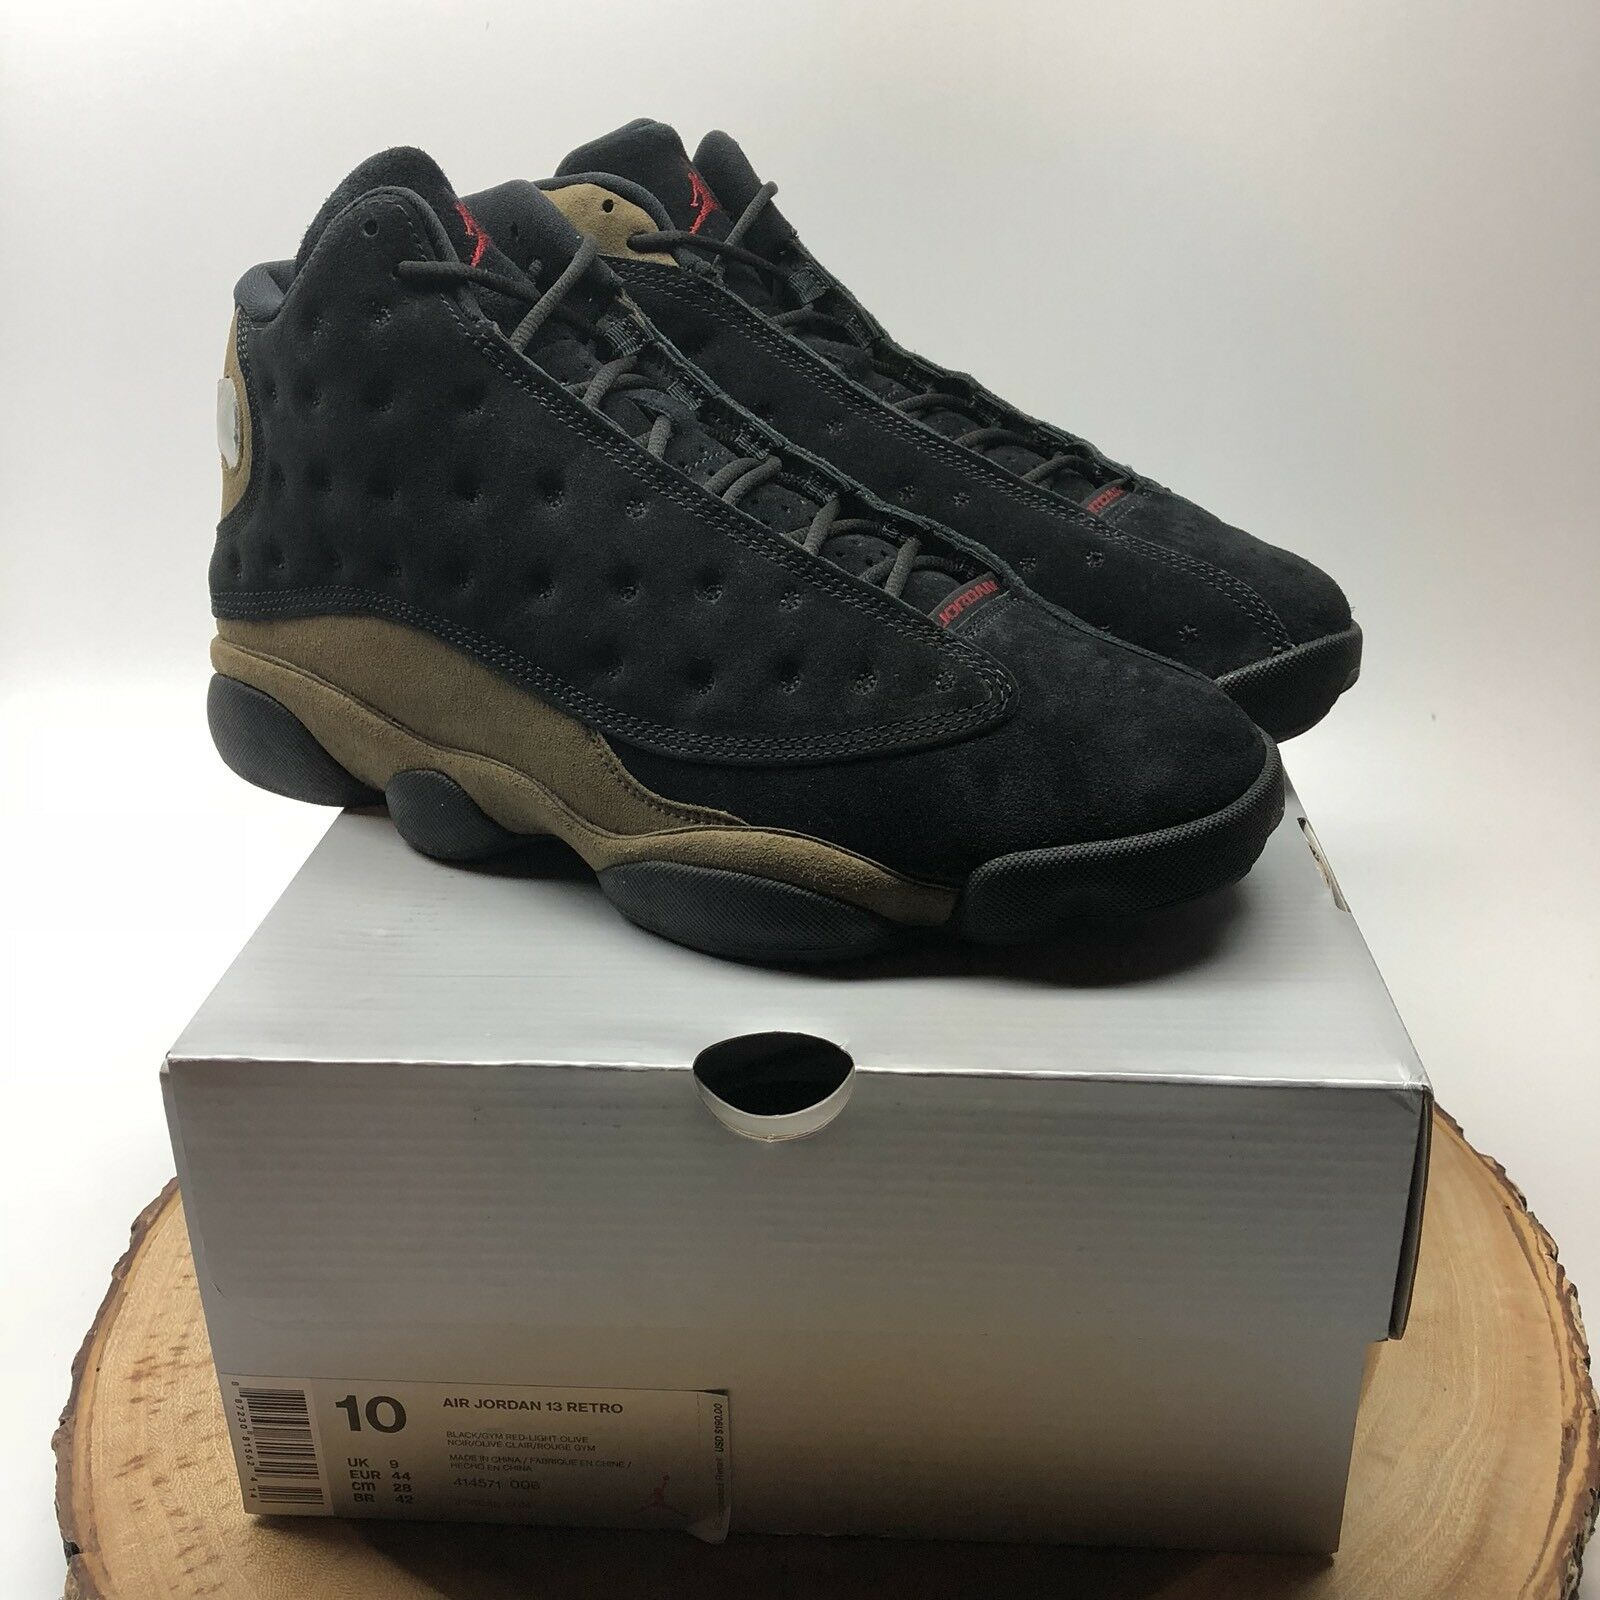 7ba9fa93d1 Nike Air Jordan Retro XIII Black 006 Size 10 Playoff He Got Game X 414571  Olive nsqejn4688-Athletic Shoes